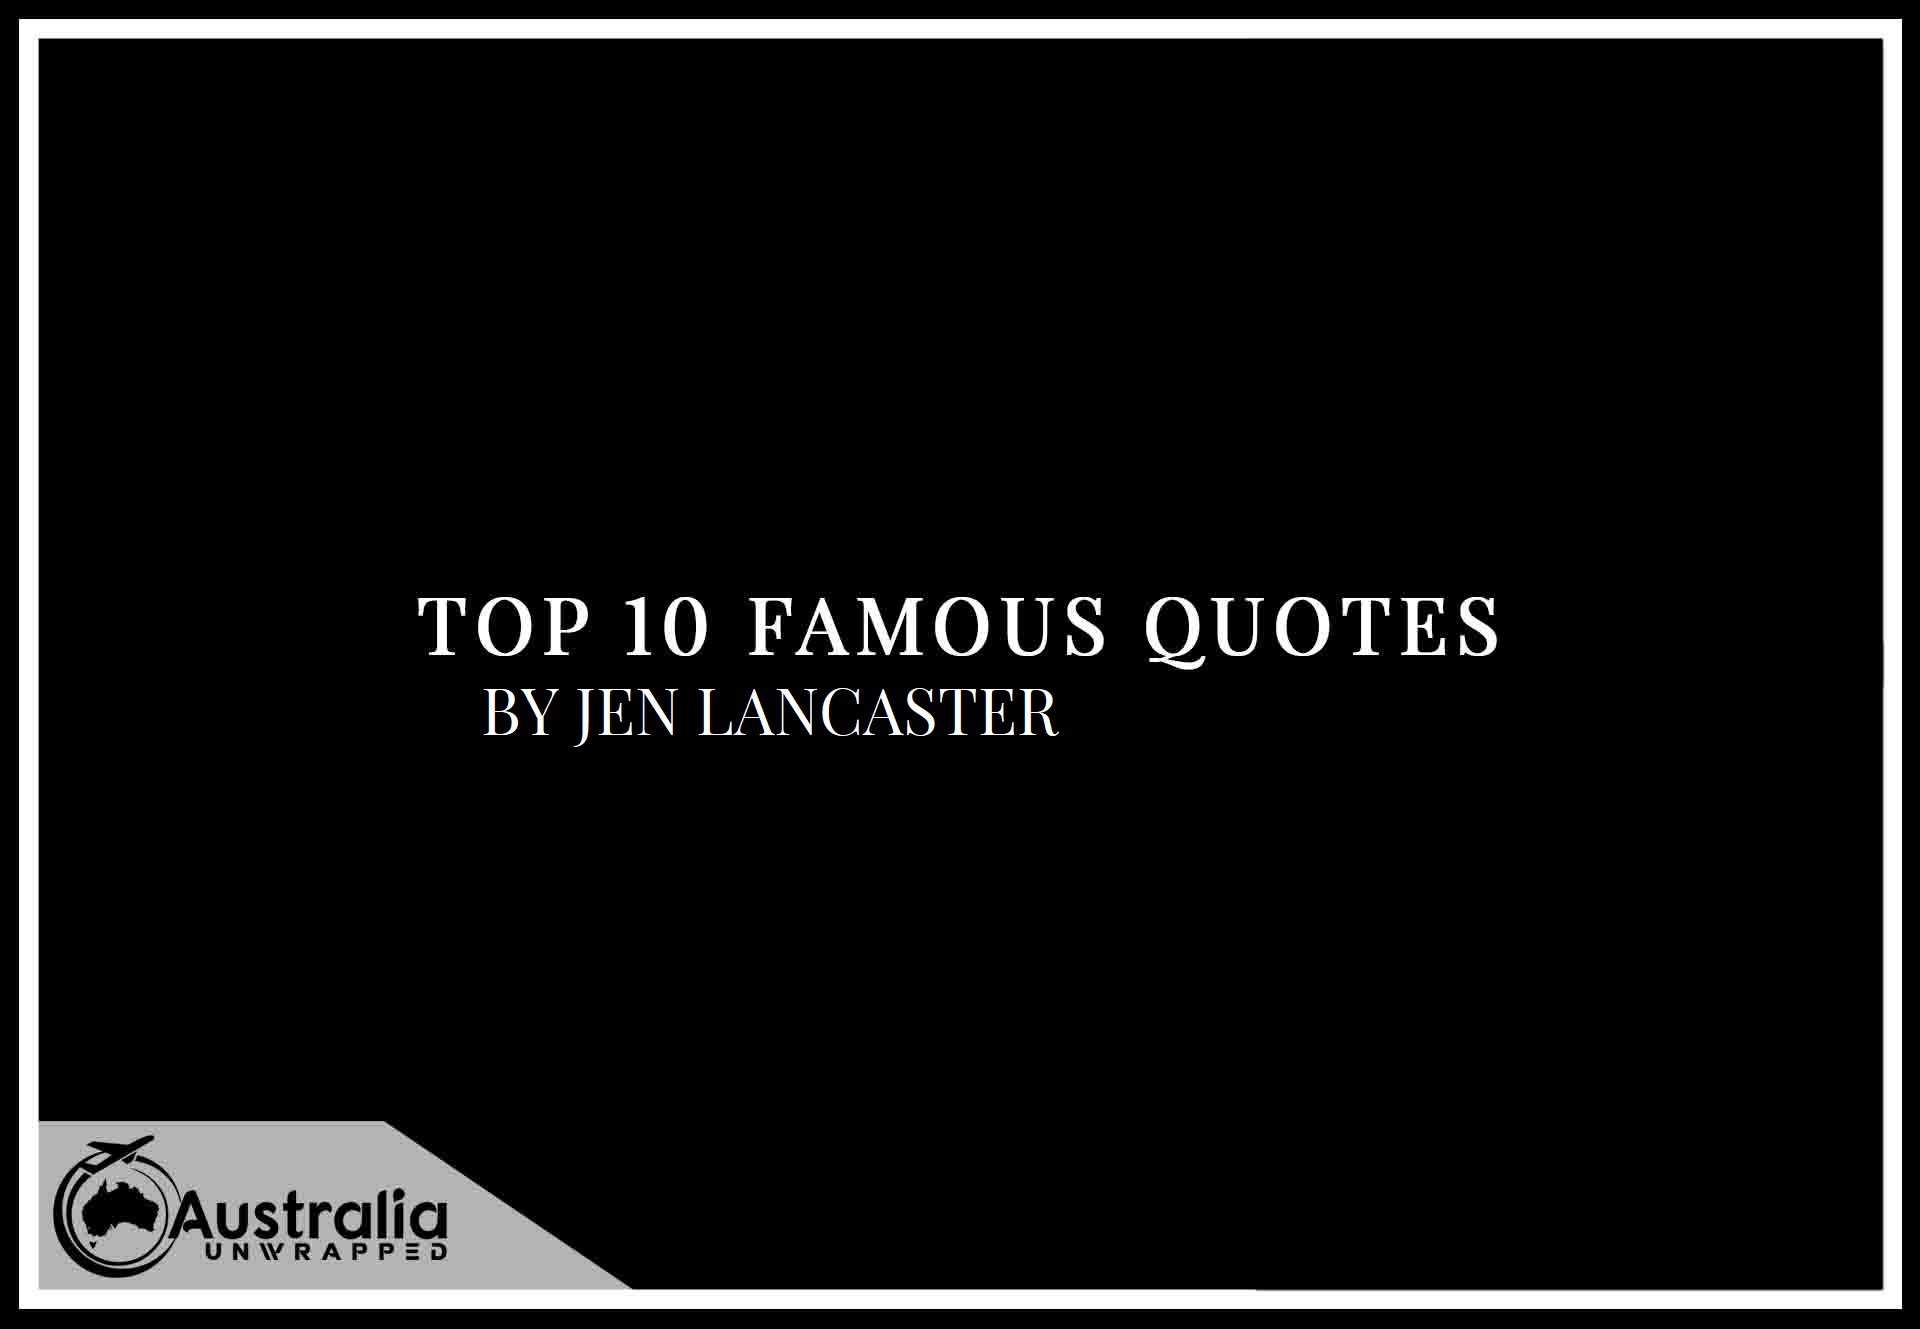 Top 10 Famous Quotes by Author jen lancaster